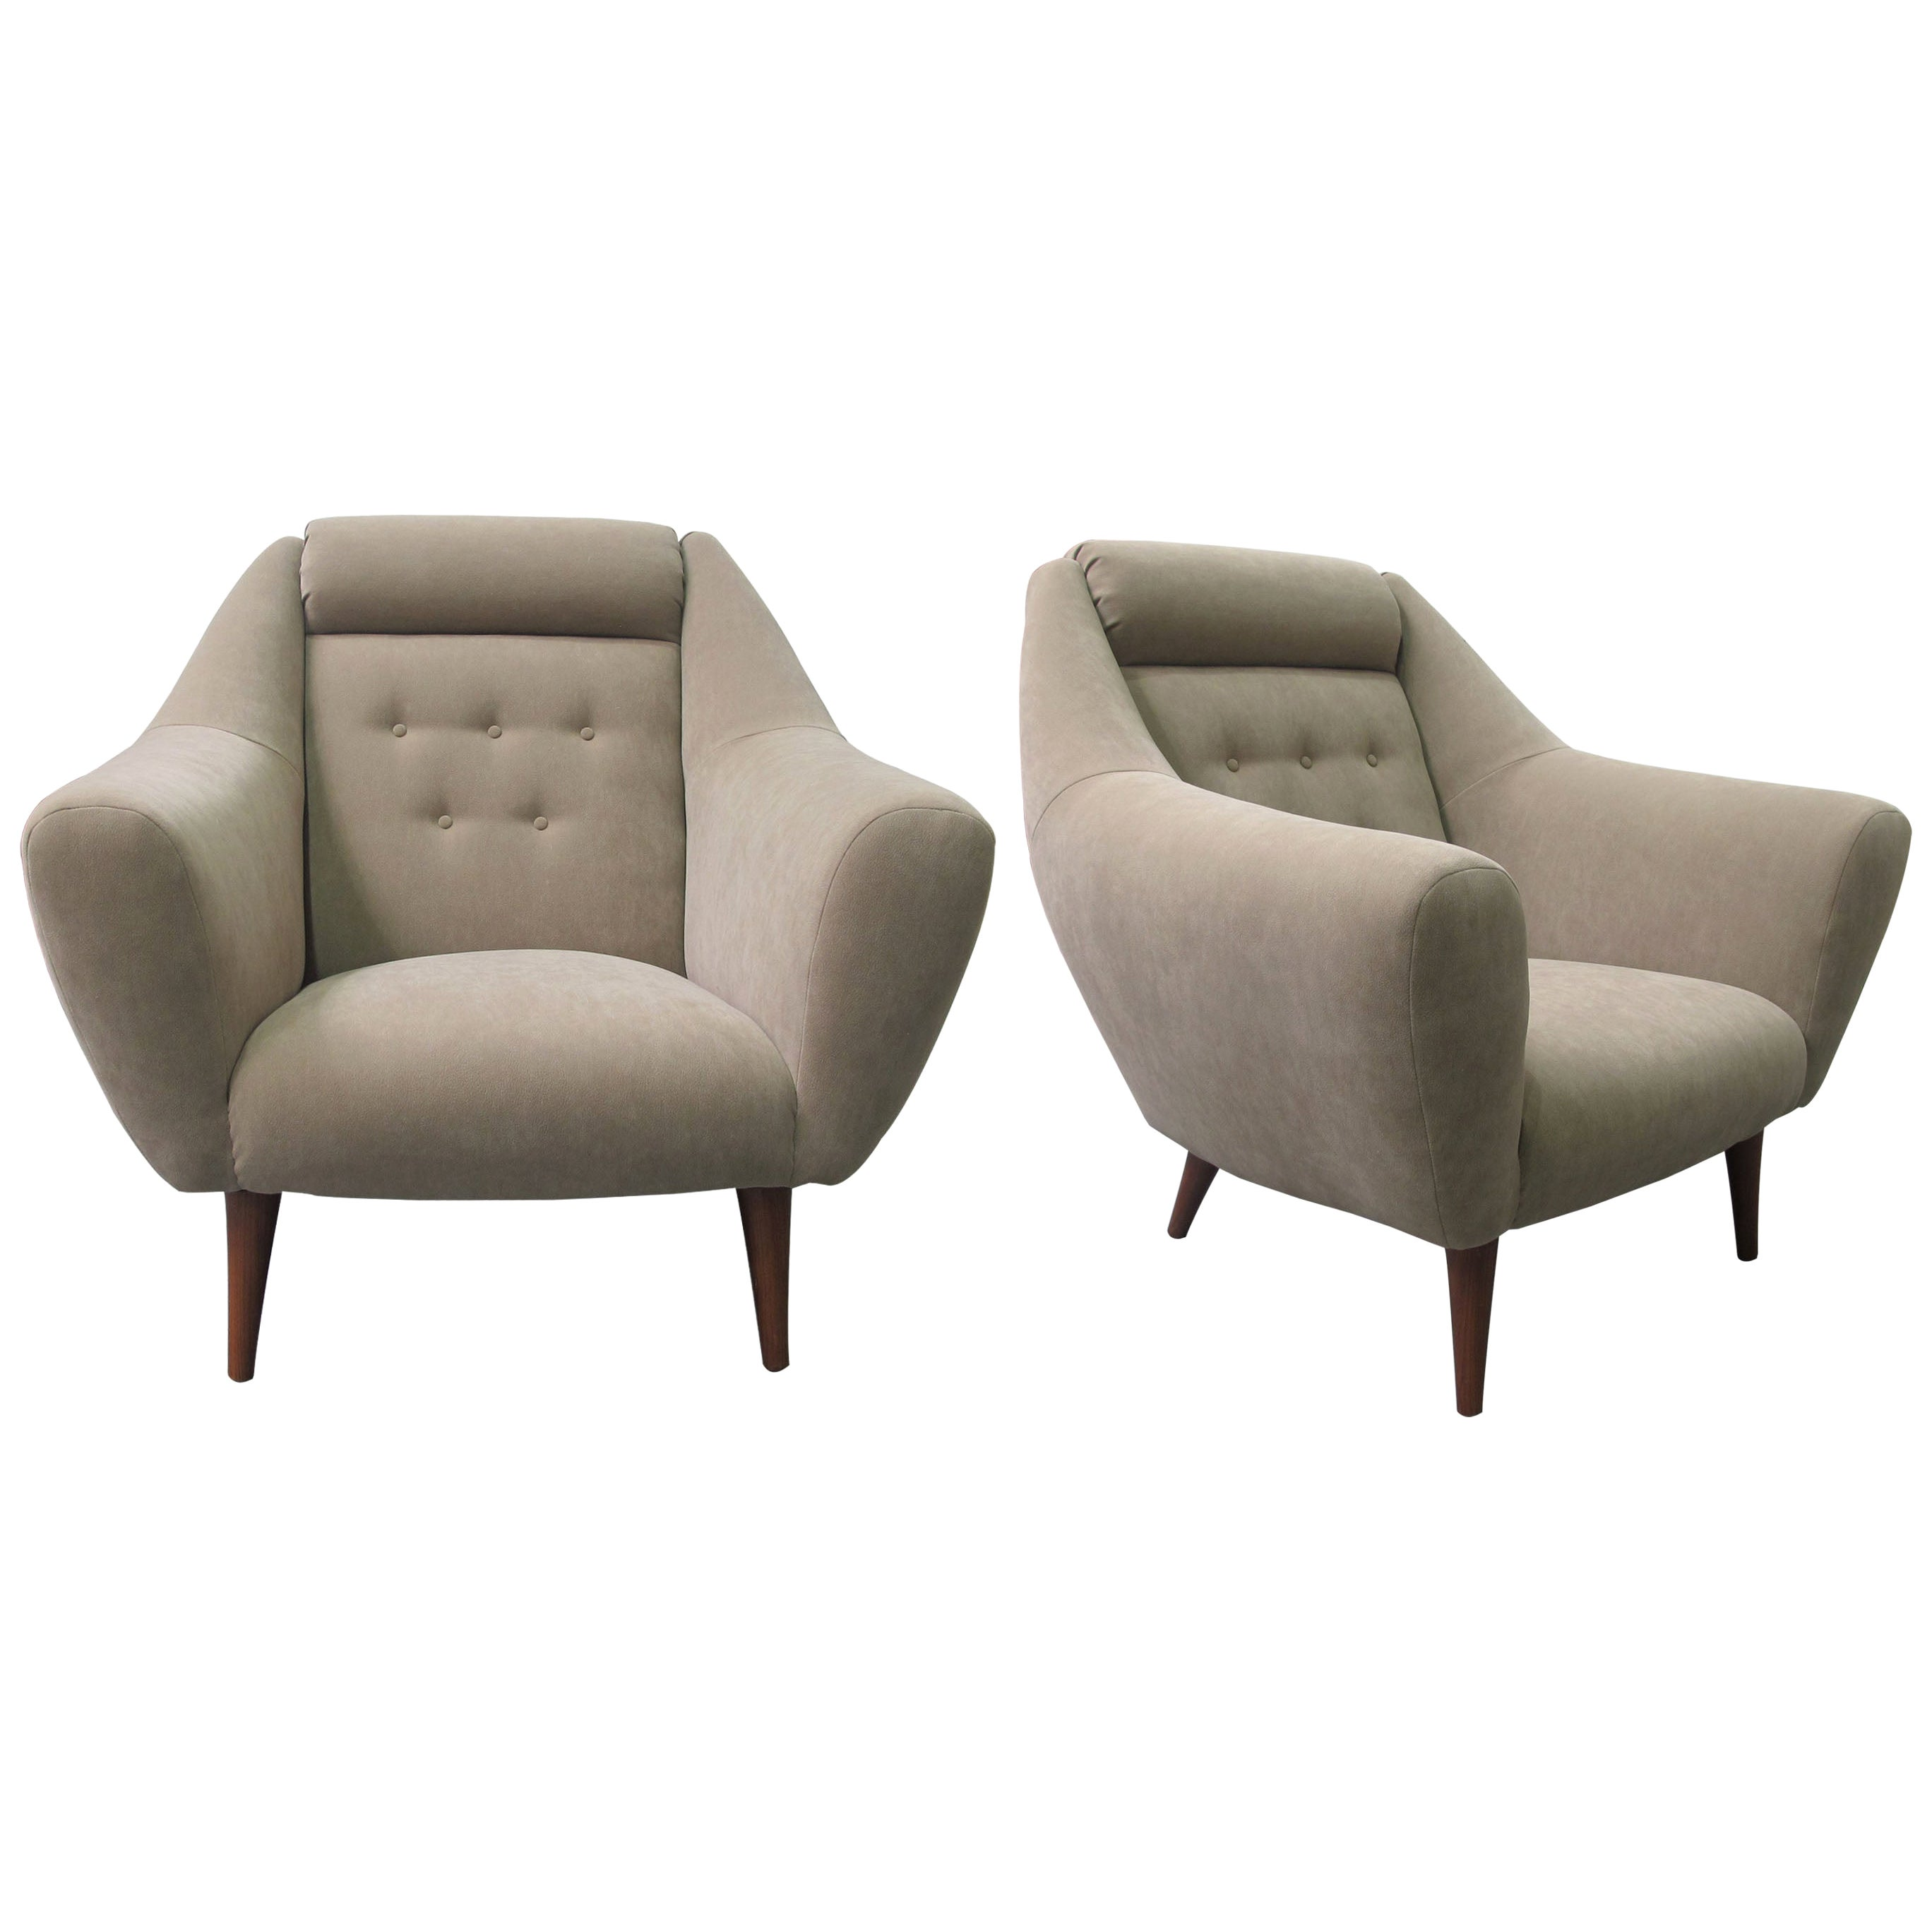 1960s Large Pair of French Armchairs Newly Reupholstered with Cone Shaped Legs